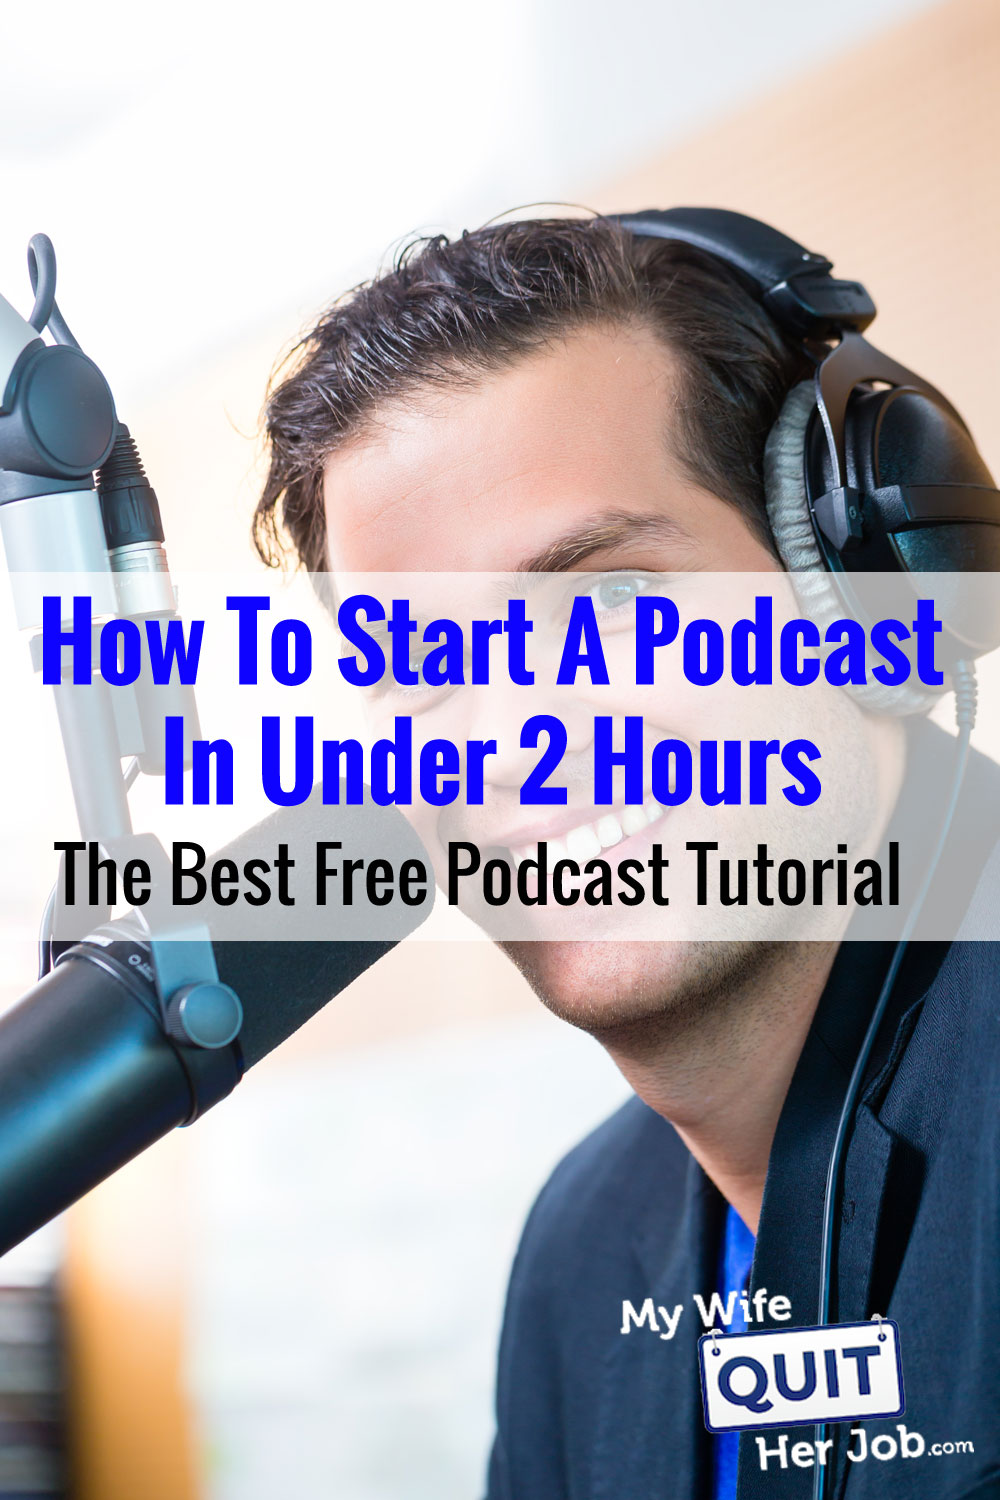 How To Start A Podcast In Under 2 Hours - The Best FREE Podcast Tutorial Available